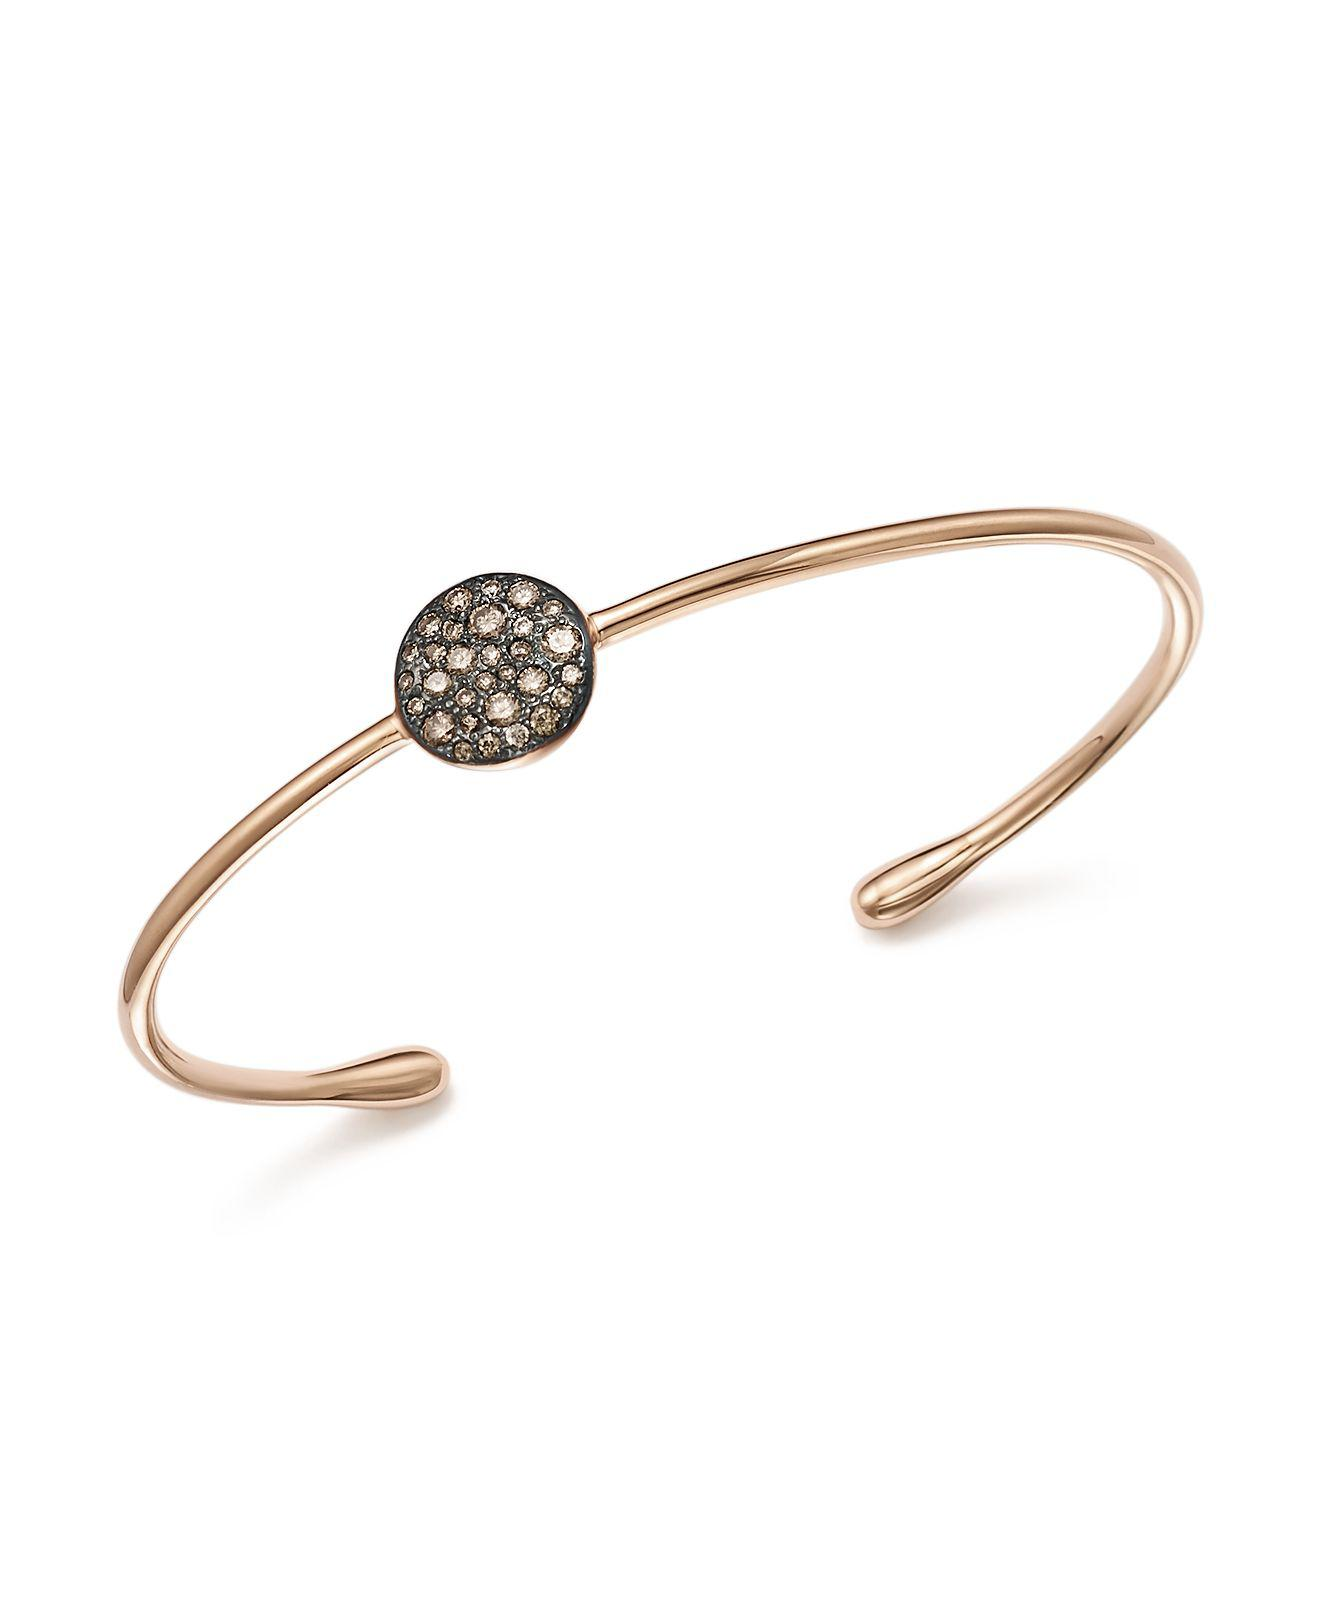 POMELLATO 18k Rose Gold Sabbia Diamond Bracelet